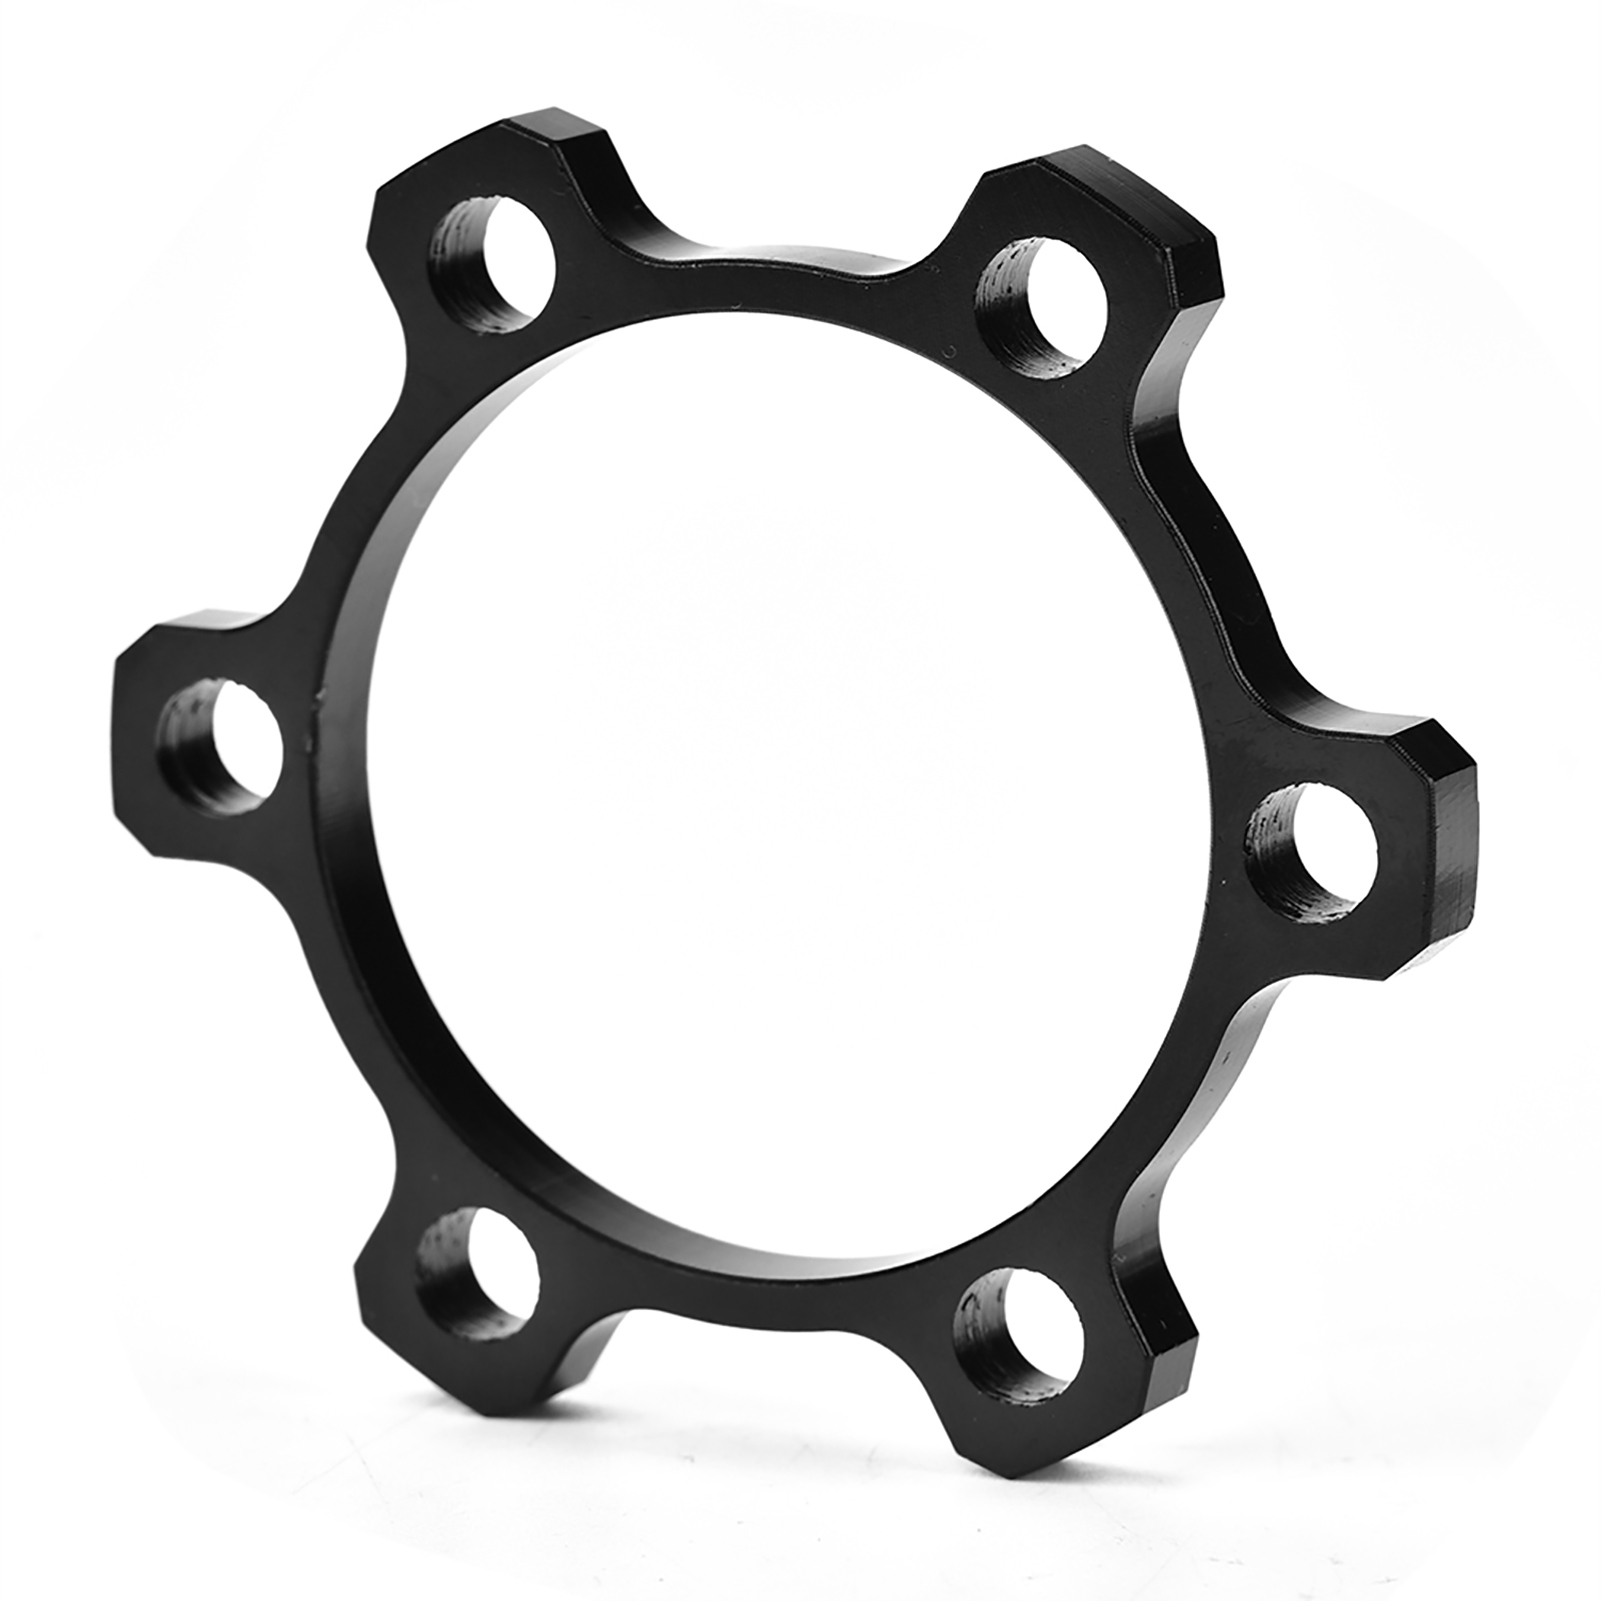 Bike Hub Conversion Kit 100*15 to 110*15 142*12 to 148*12 Adapter for Boost-Hub